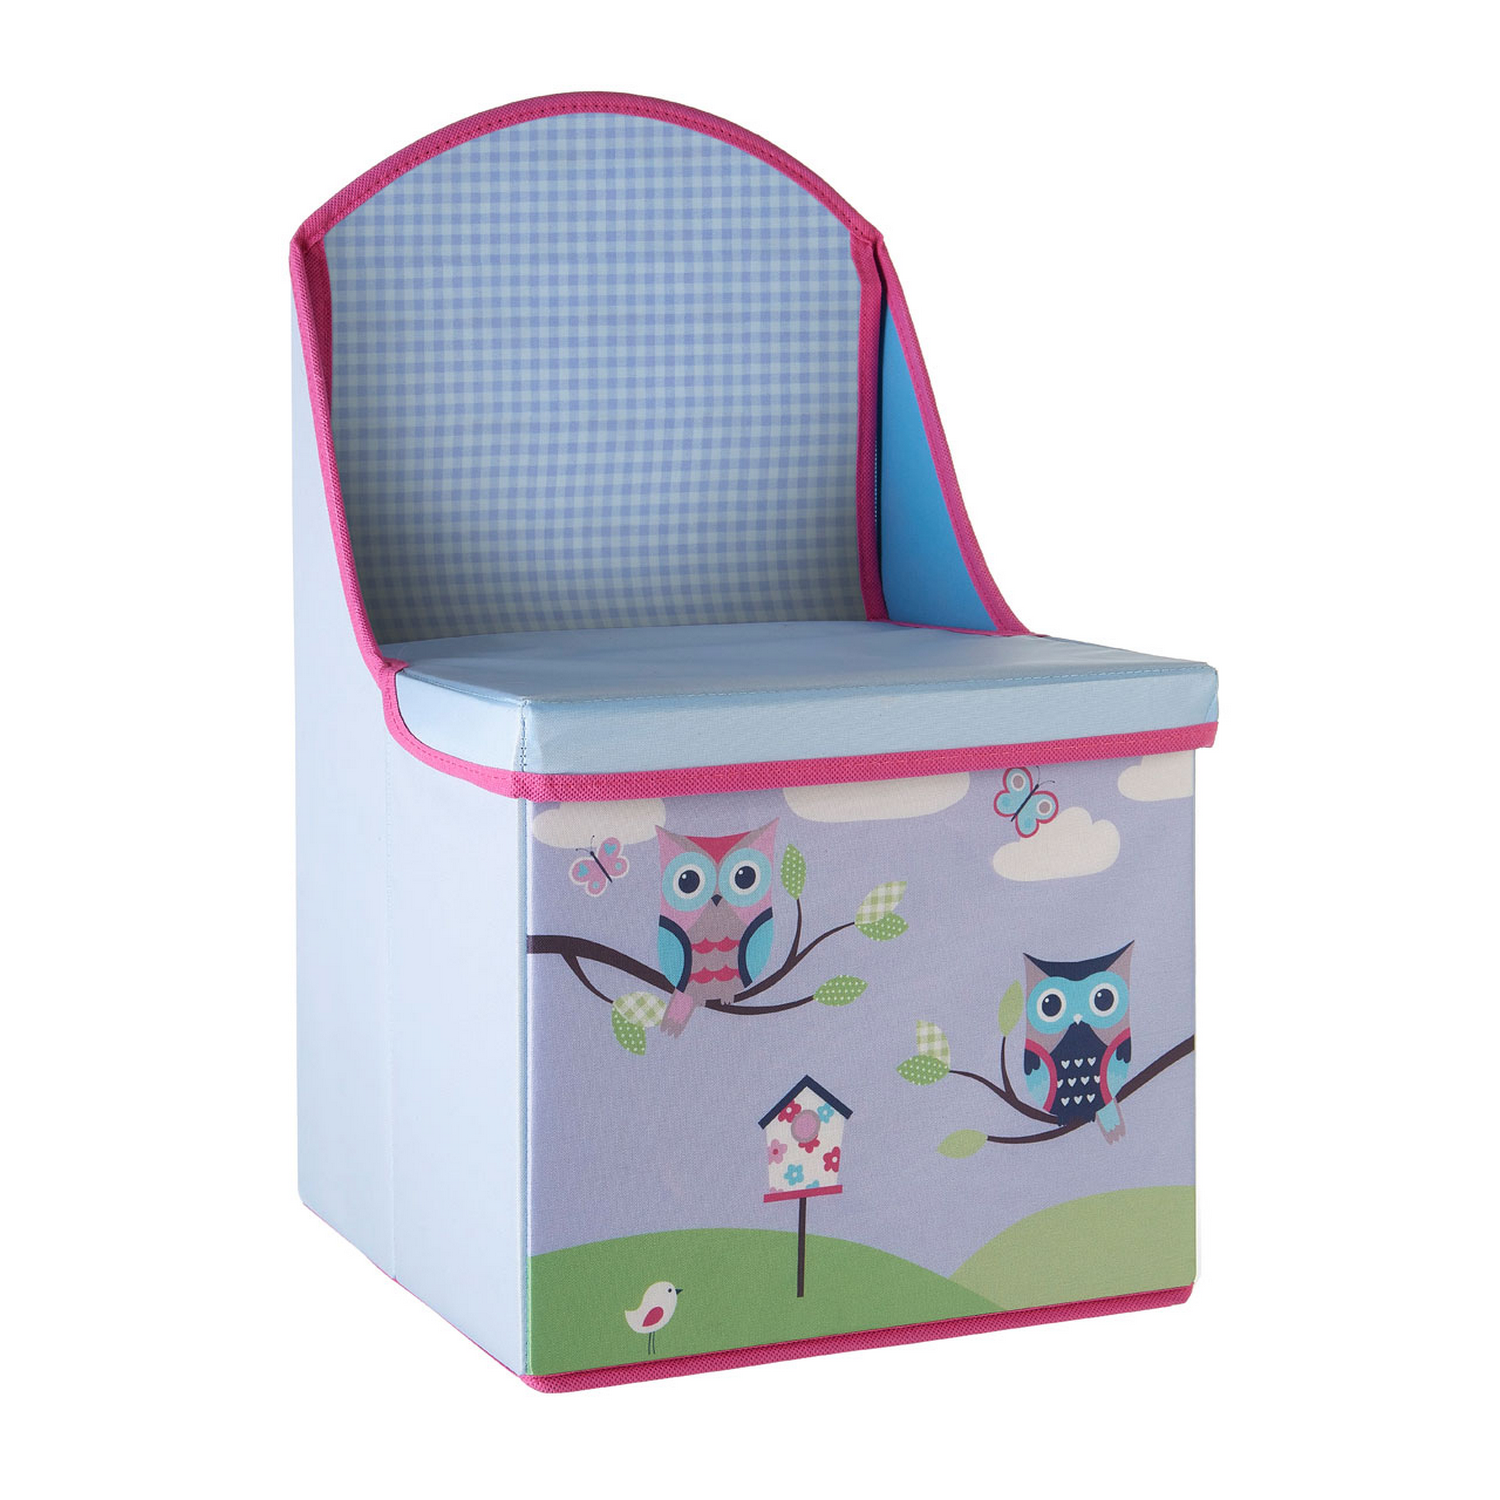 owl chair for kids wedding cover hire buckinghamshire polyester ottoman toy storage box seat pouffe stool